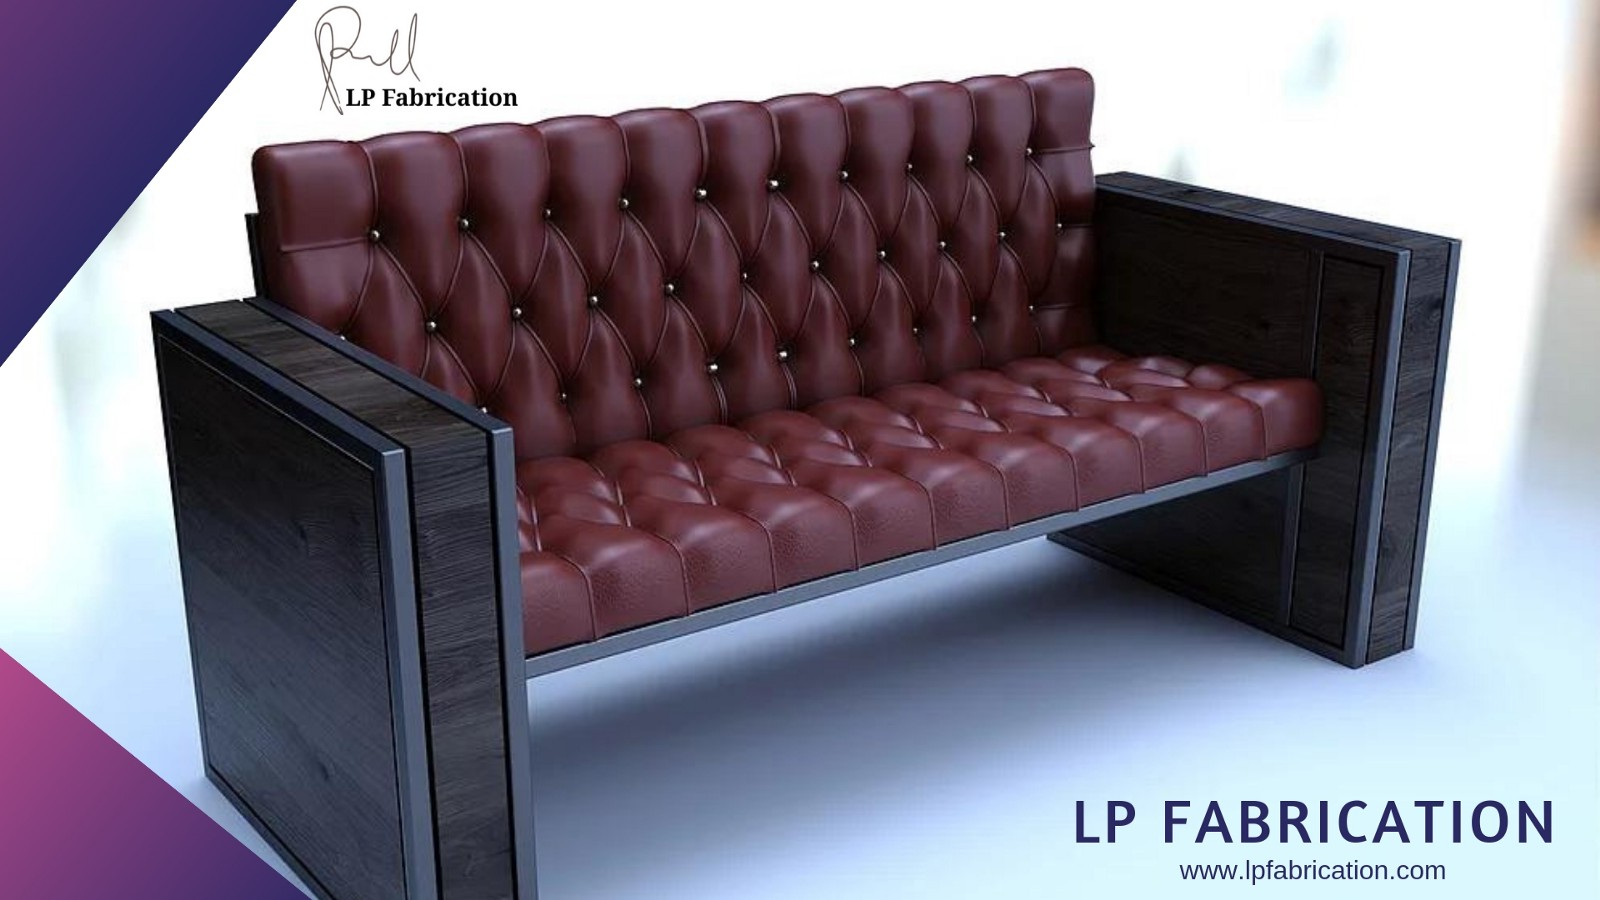 Home Goods Furniture Store Custom Fabrication Lp Fabrication